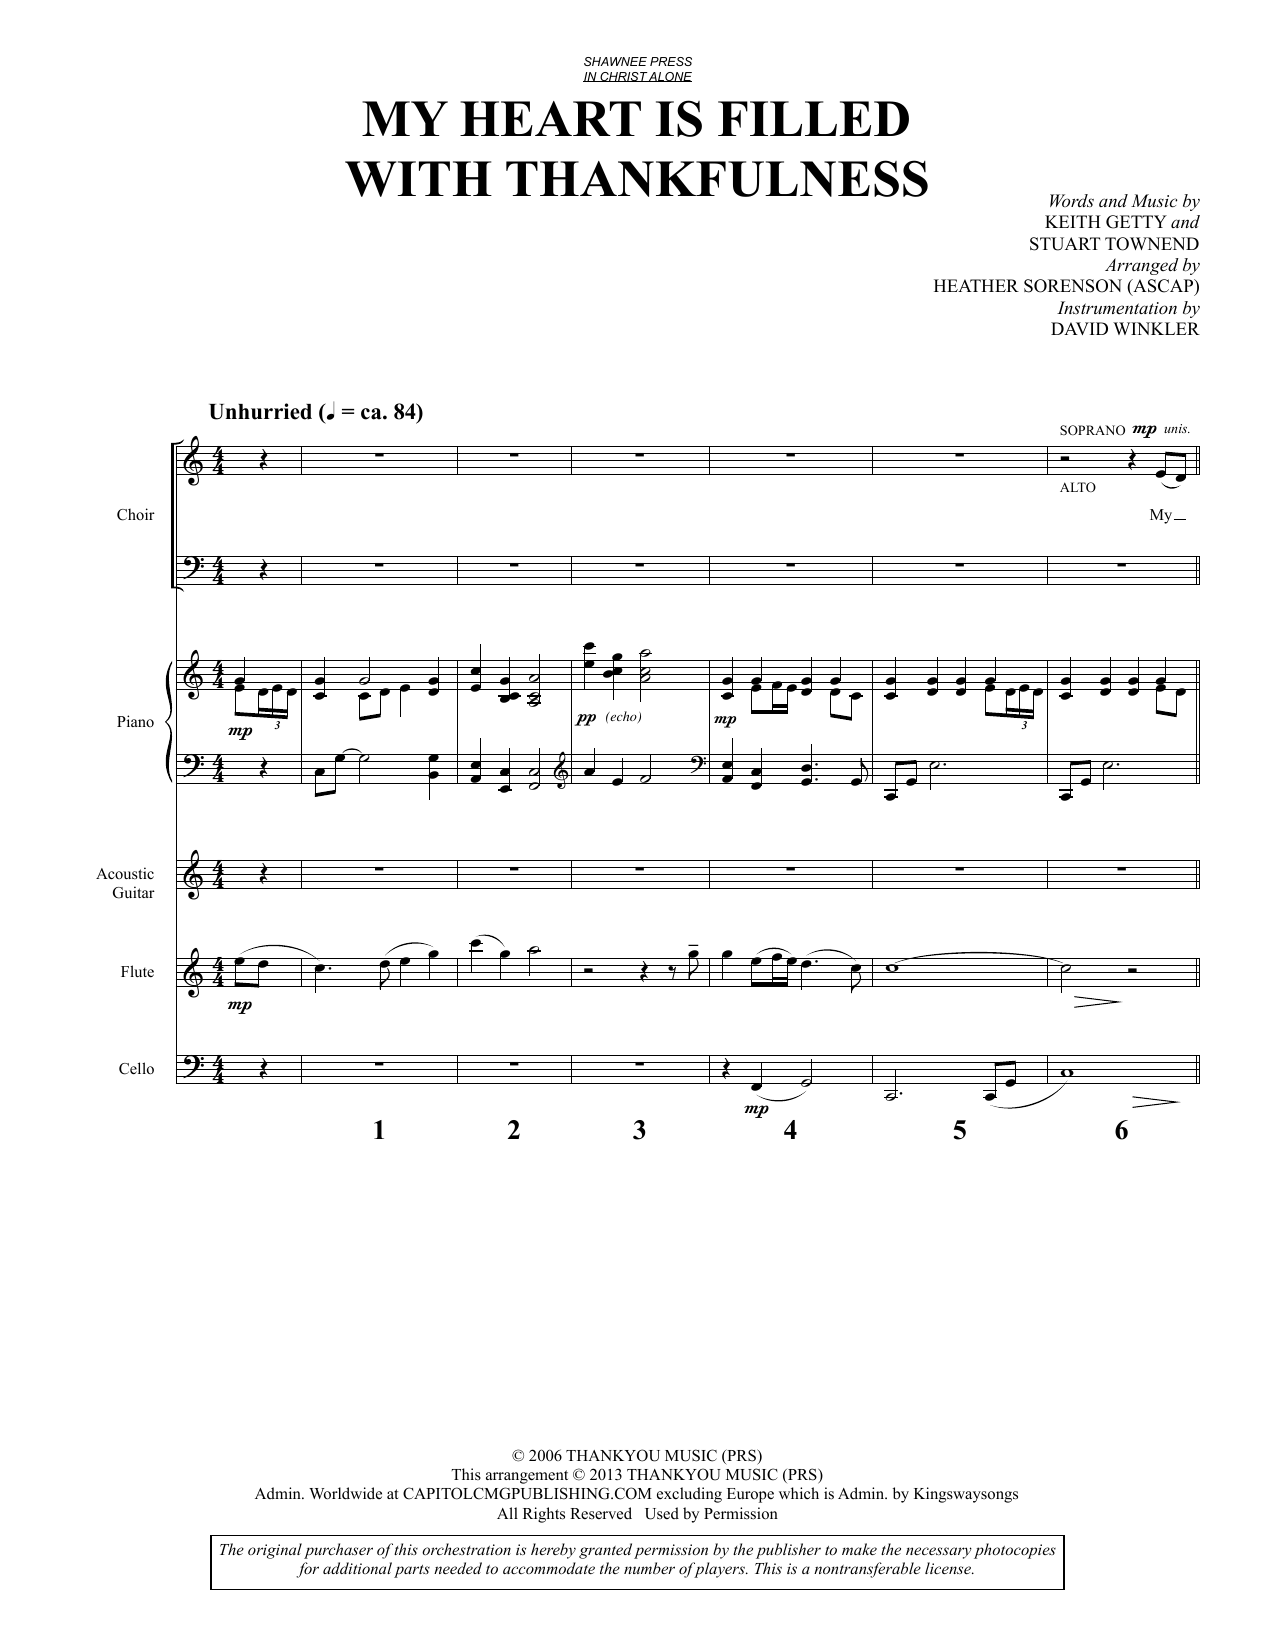 My Heart Is Filled with Thankfulness (COMPLETE) sheet music for orchestra/band by Heather Sorenson, Keith Getty and Stuart Townend. Score Image Preview.